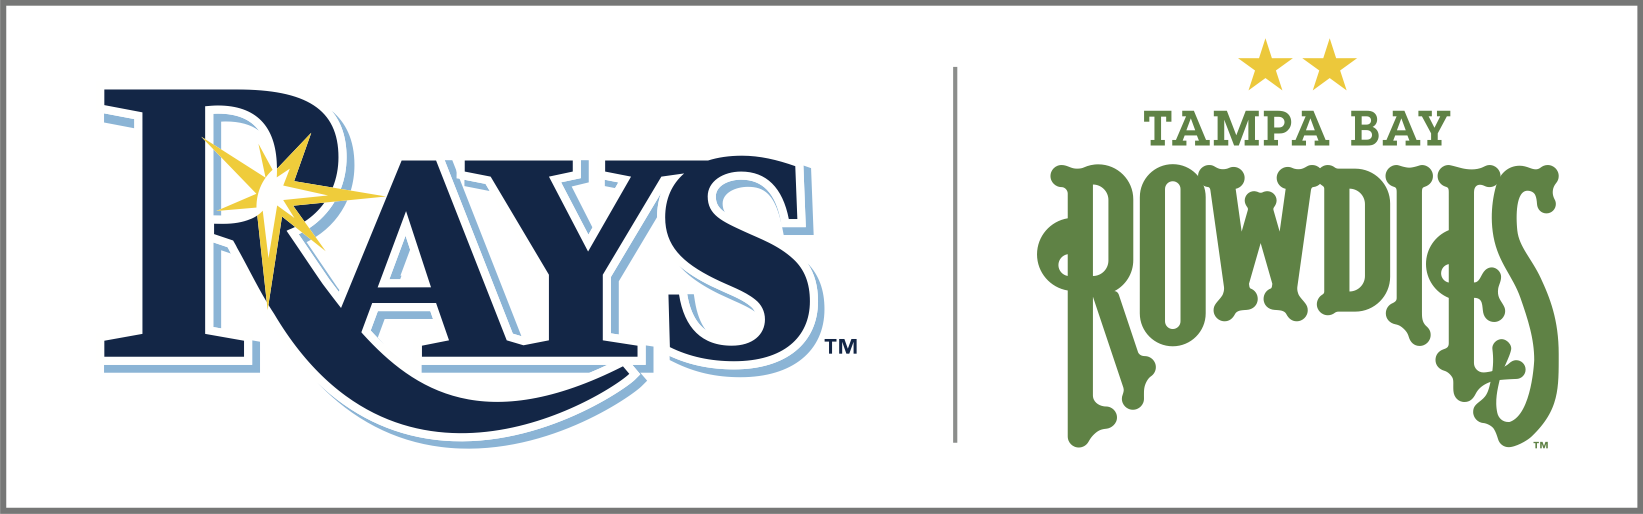 Rays-Rowdies Horizontal (1).png